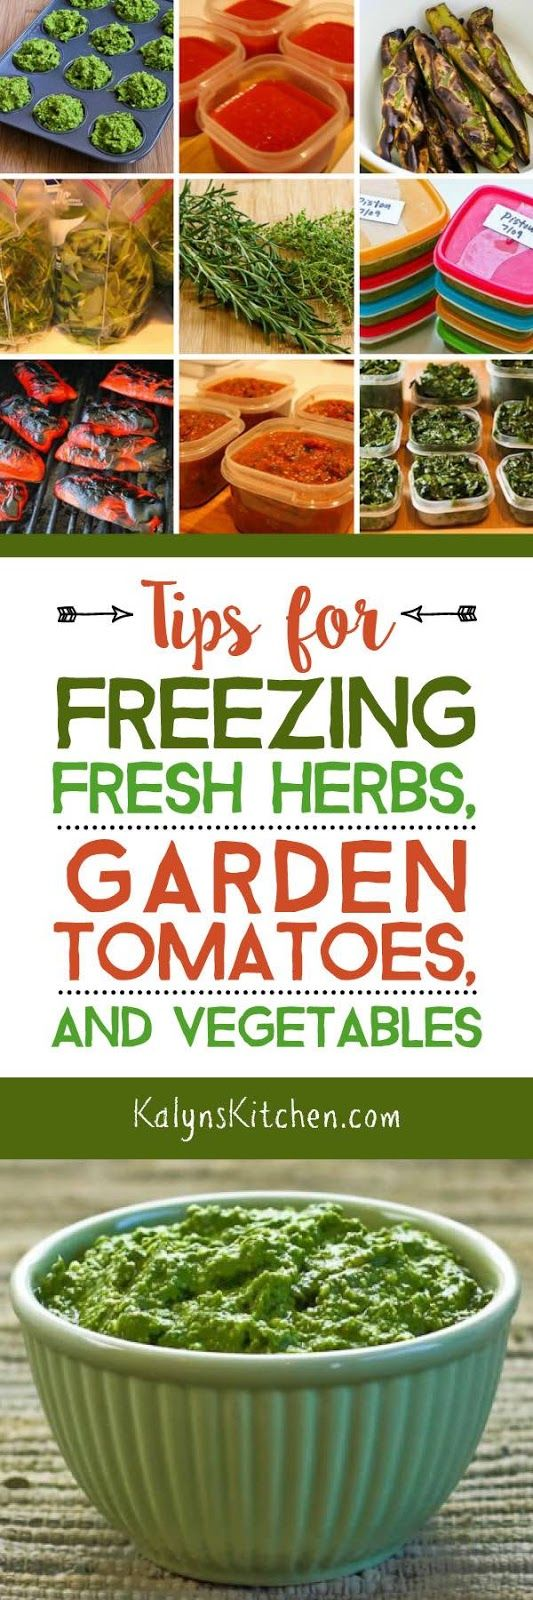 I've been gardening for many, many years, and this post shares my best and easiest Tips for Freezing Fresh Herbs, Garden Tomatoes, and Vegetables! Hope it's useful for other gardeners. And if you have a tip I don't know about, please leave it as a comment on the post! [found on KalynsKitchen.com]